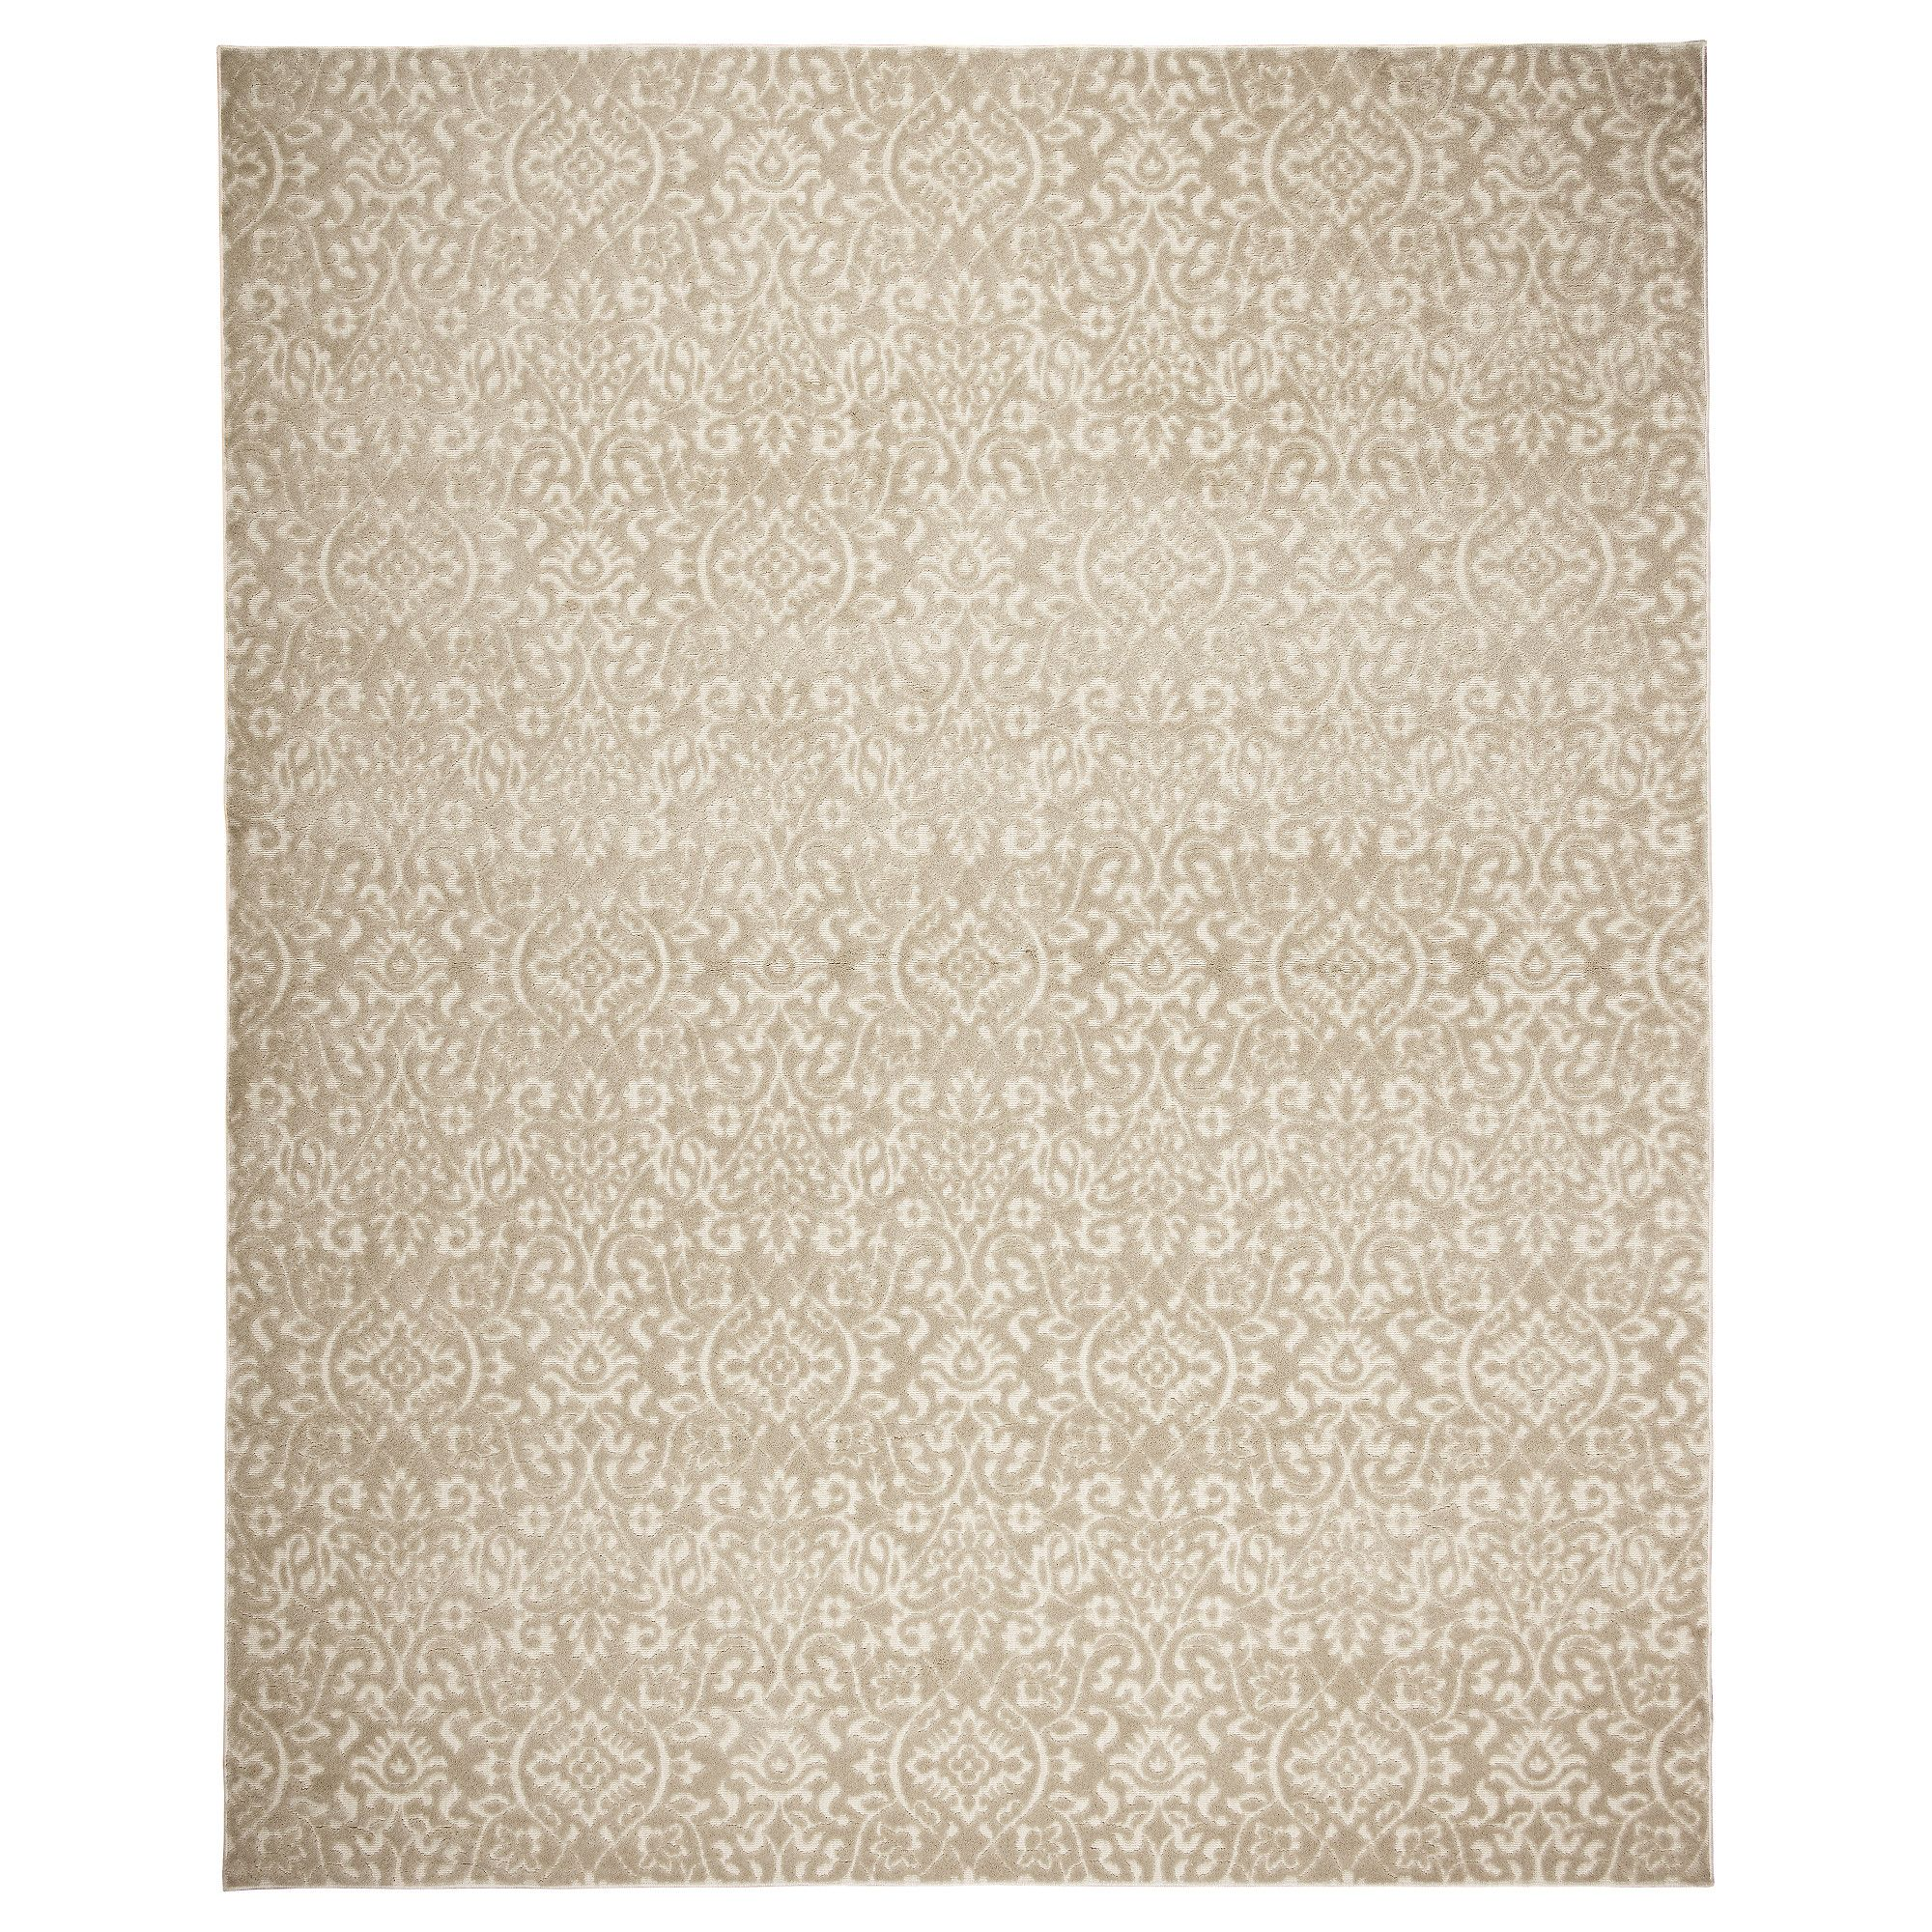 Dynt Rug Low Pile Beige Decorating Rugs In Living